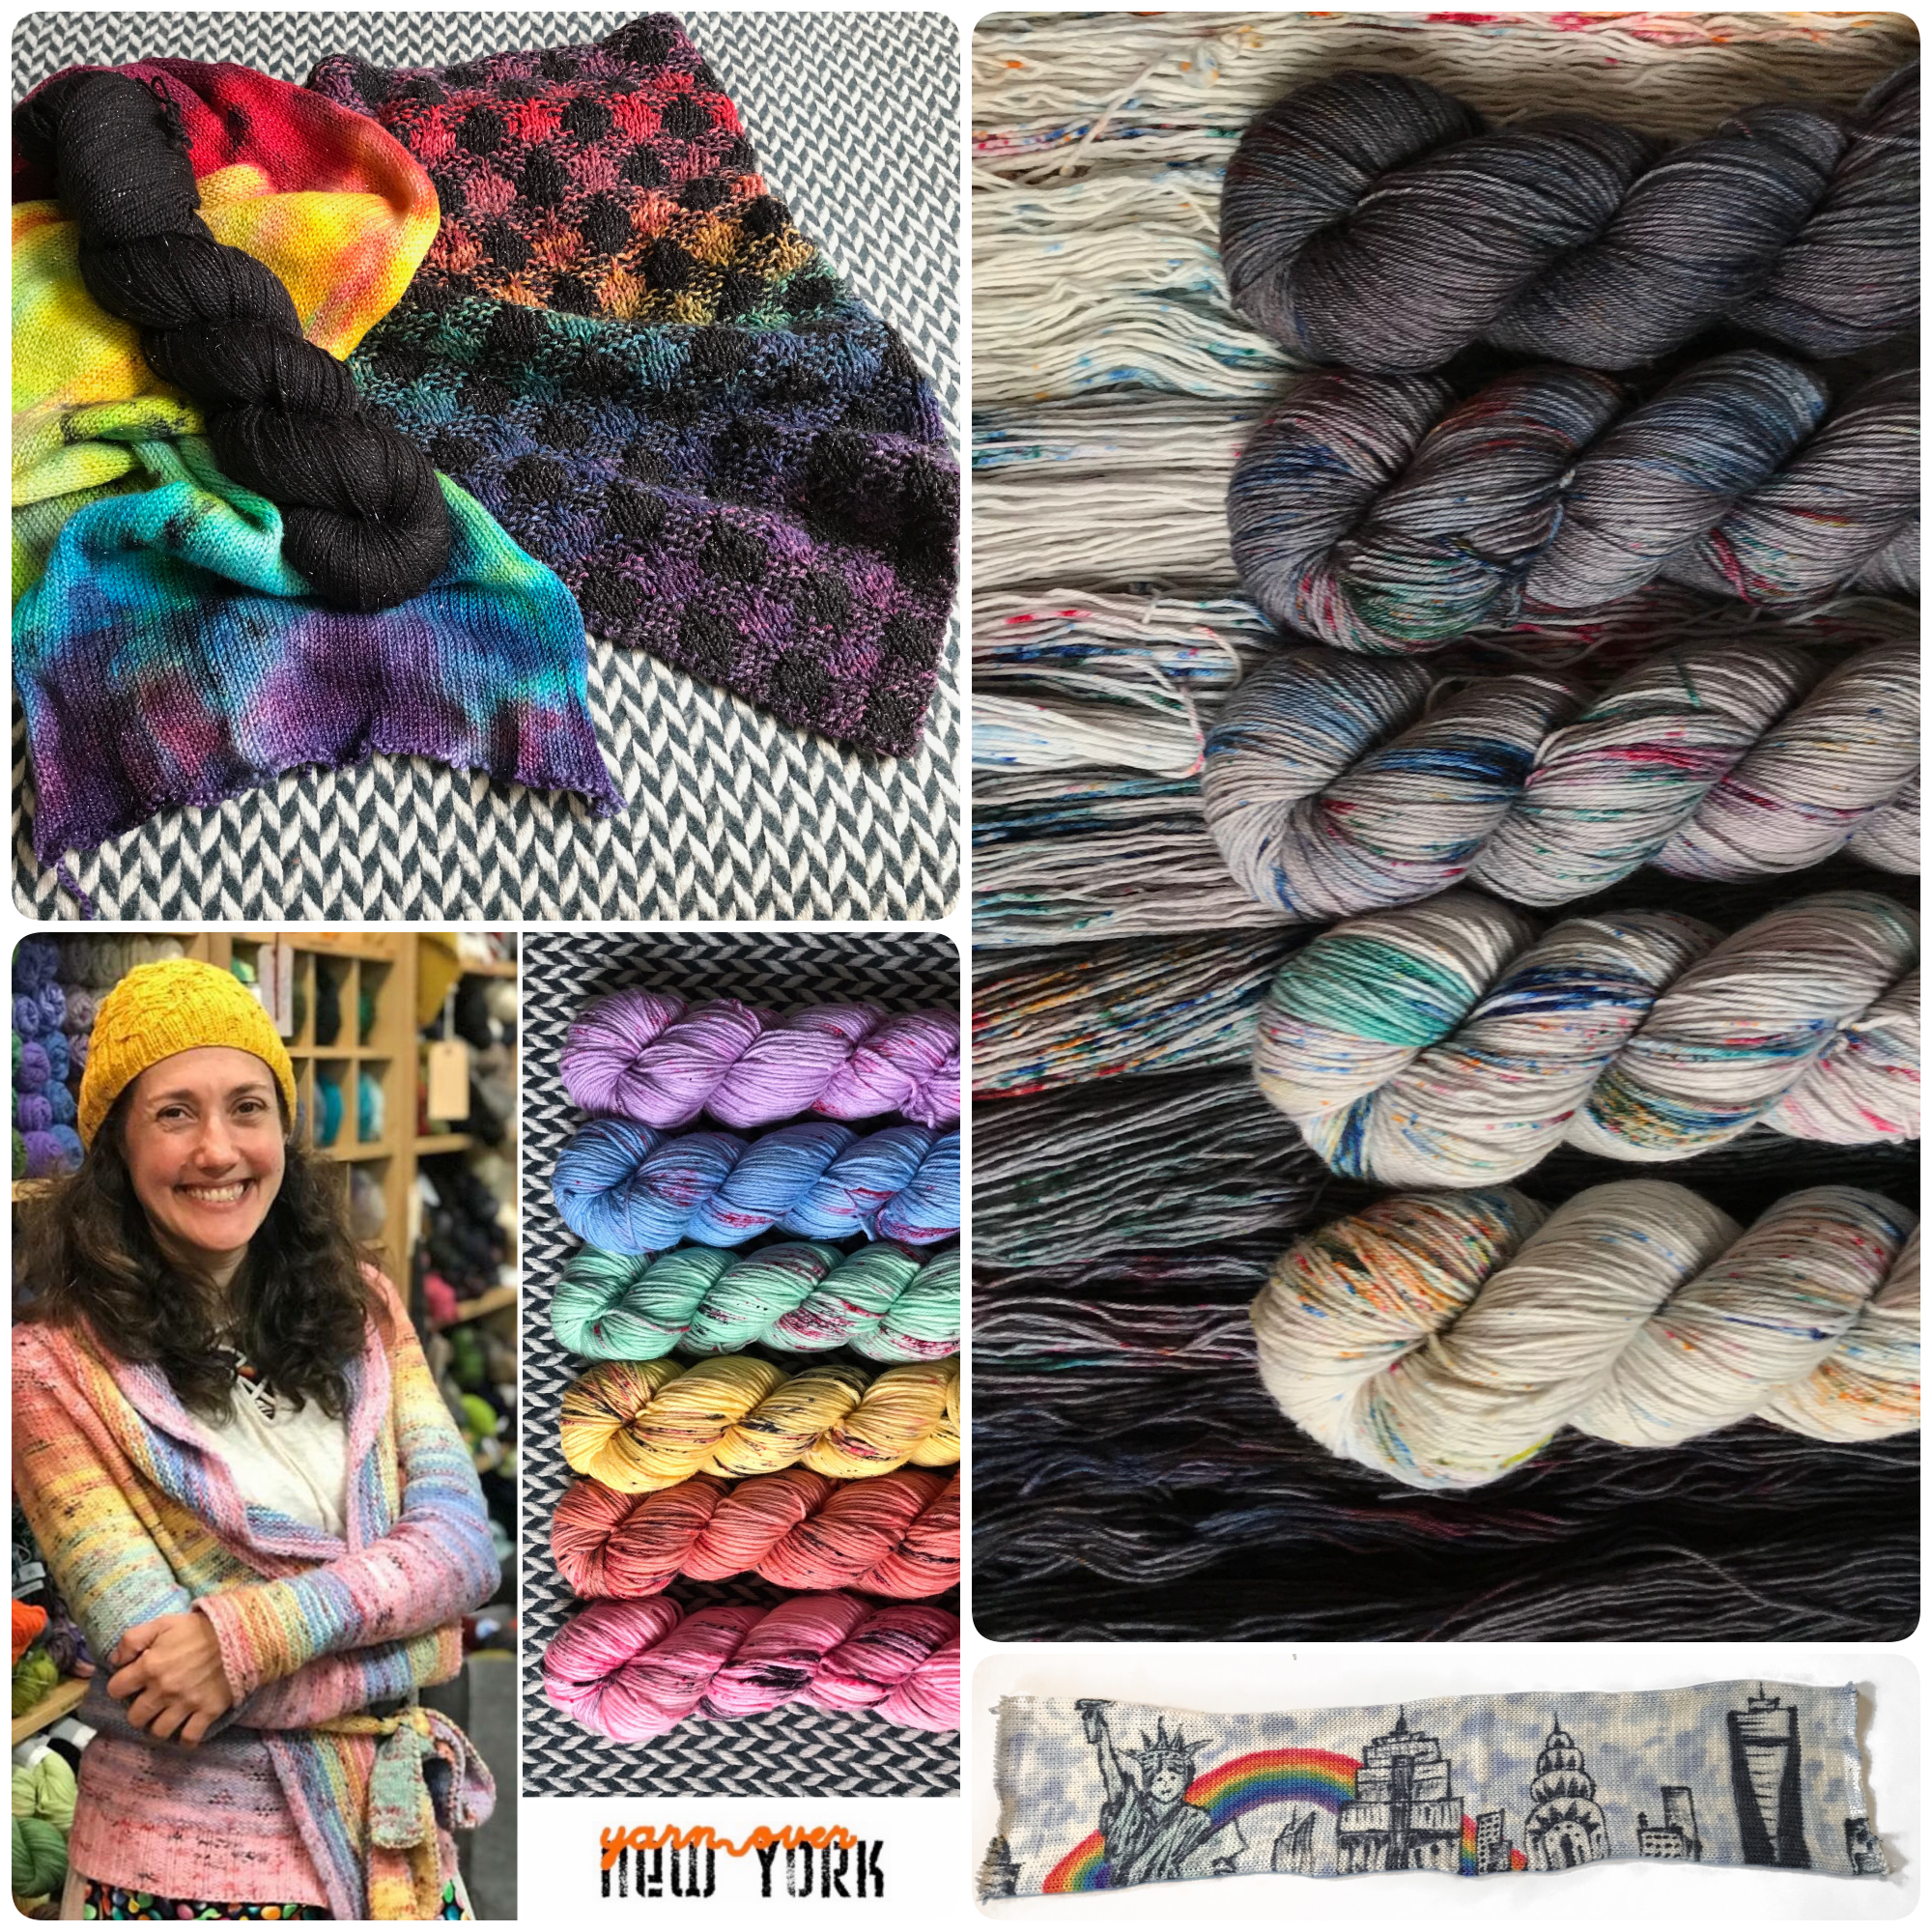 Collage of yarn images from Yarn Over New York